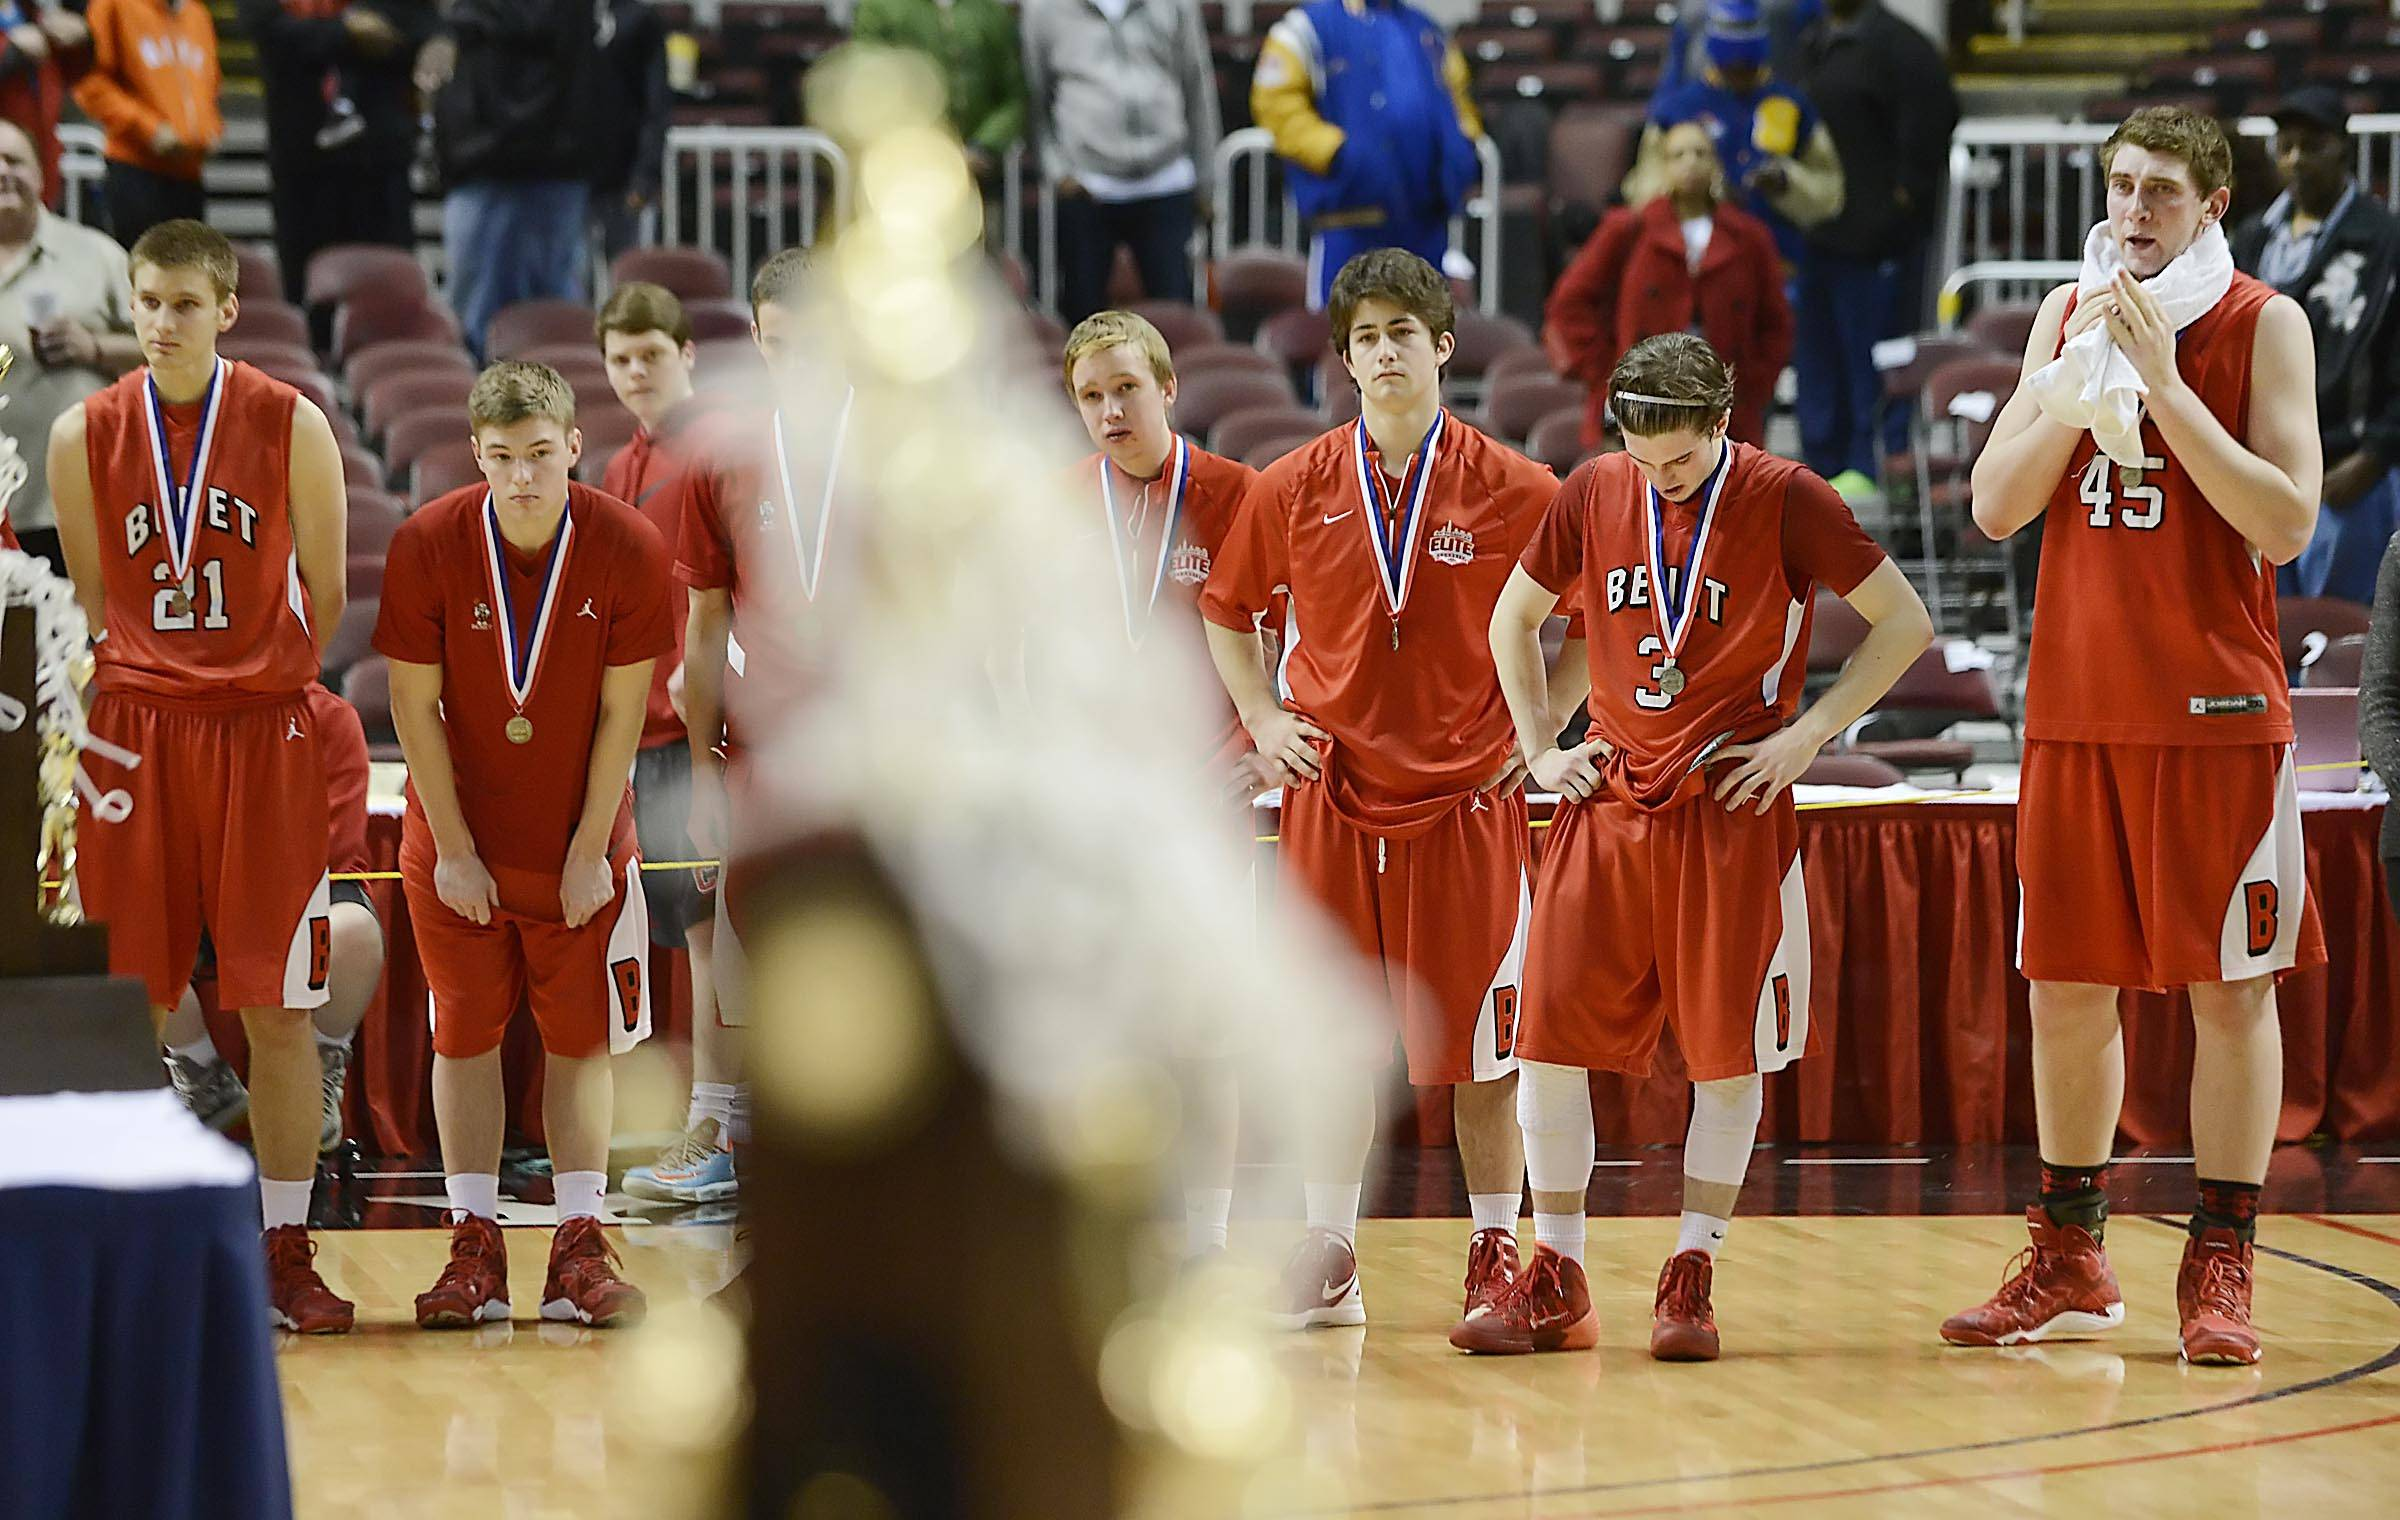 Benet Academy waits to receive its second place trophy after losing in the final seconds to Whitney Young in the Class 4A state championship game at Carver Arena in Peoria Saturday.